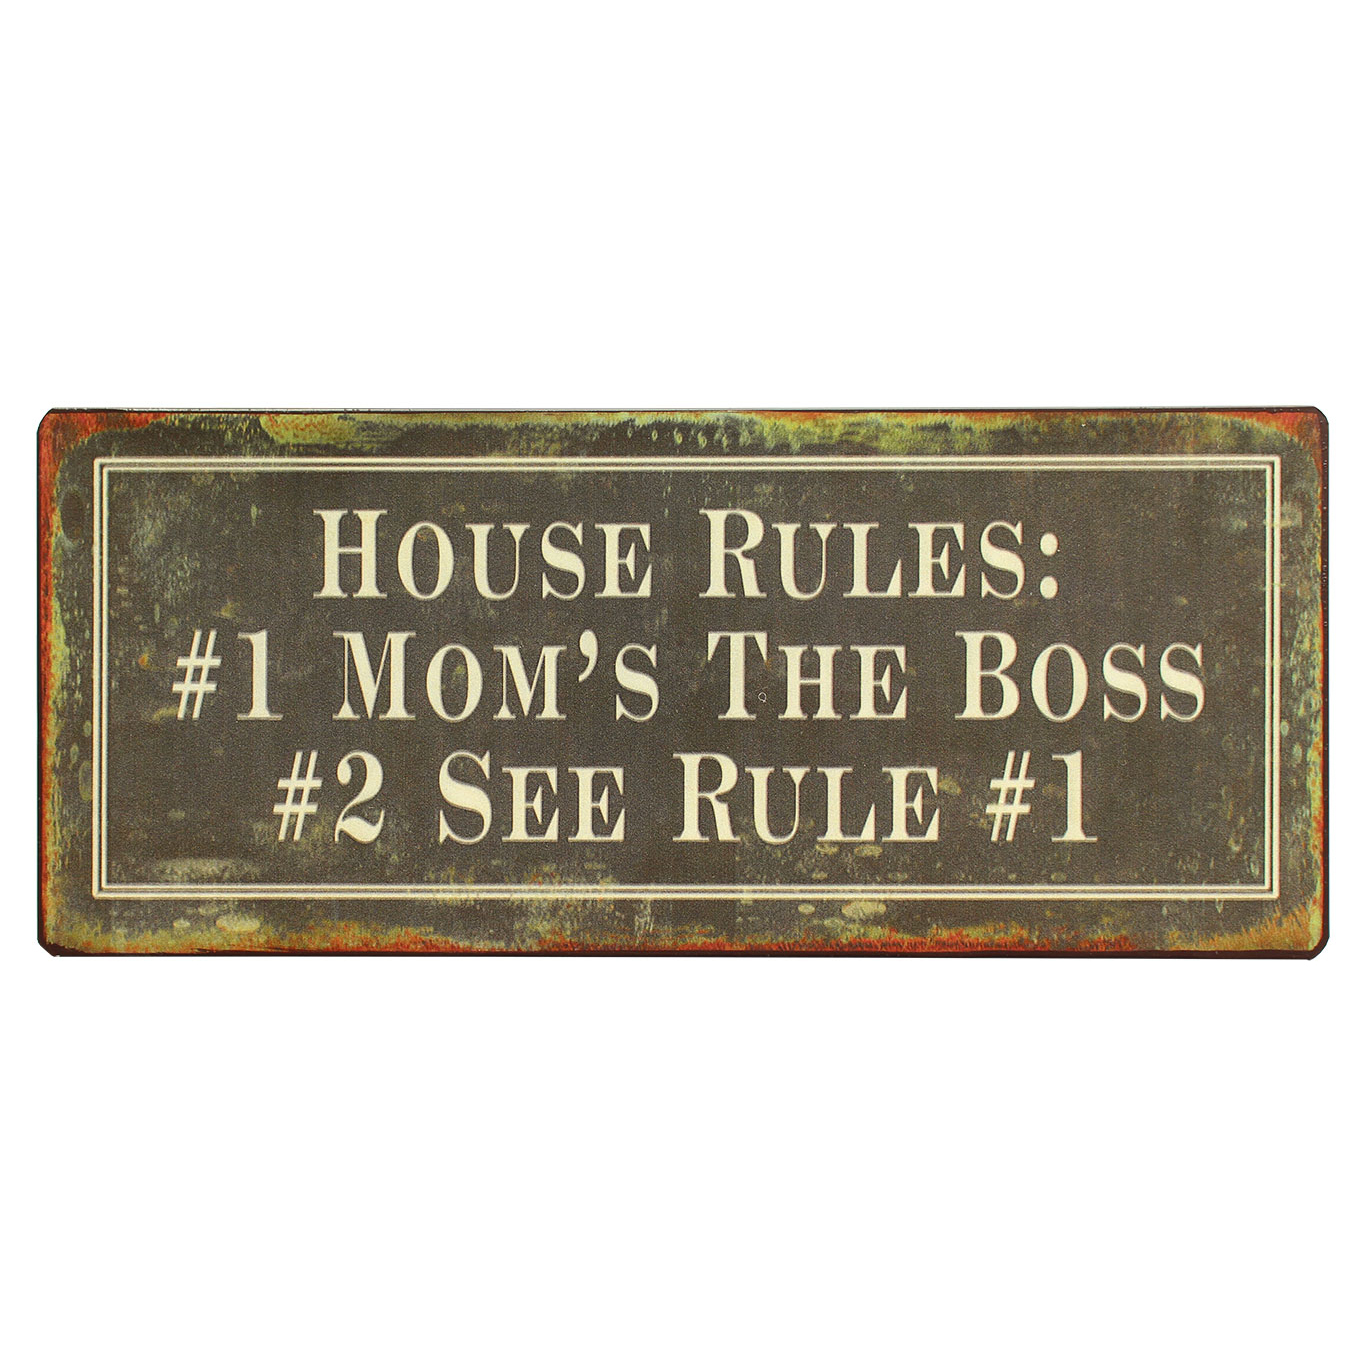 em479-House-rules-mom-is-the-boss-tekstbord-uitspraken-gezegde-spreuken-rustiek-bord-cadeau v